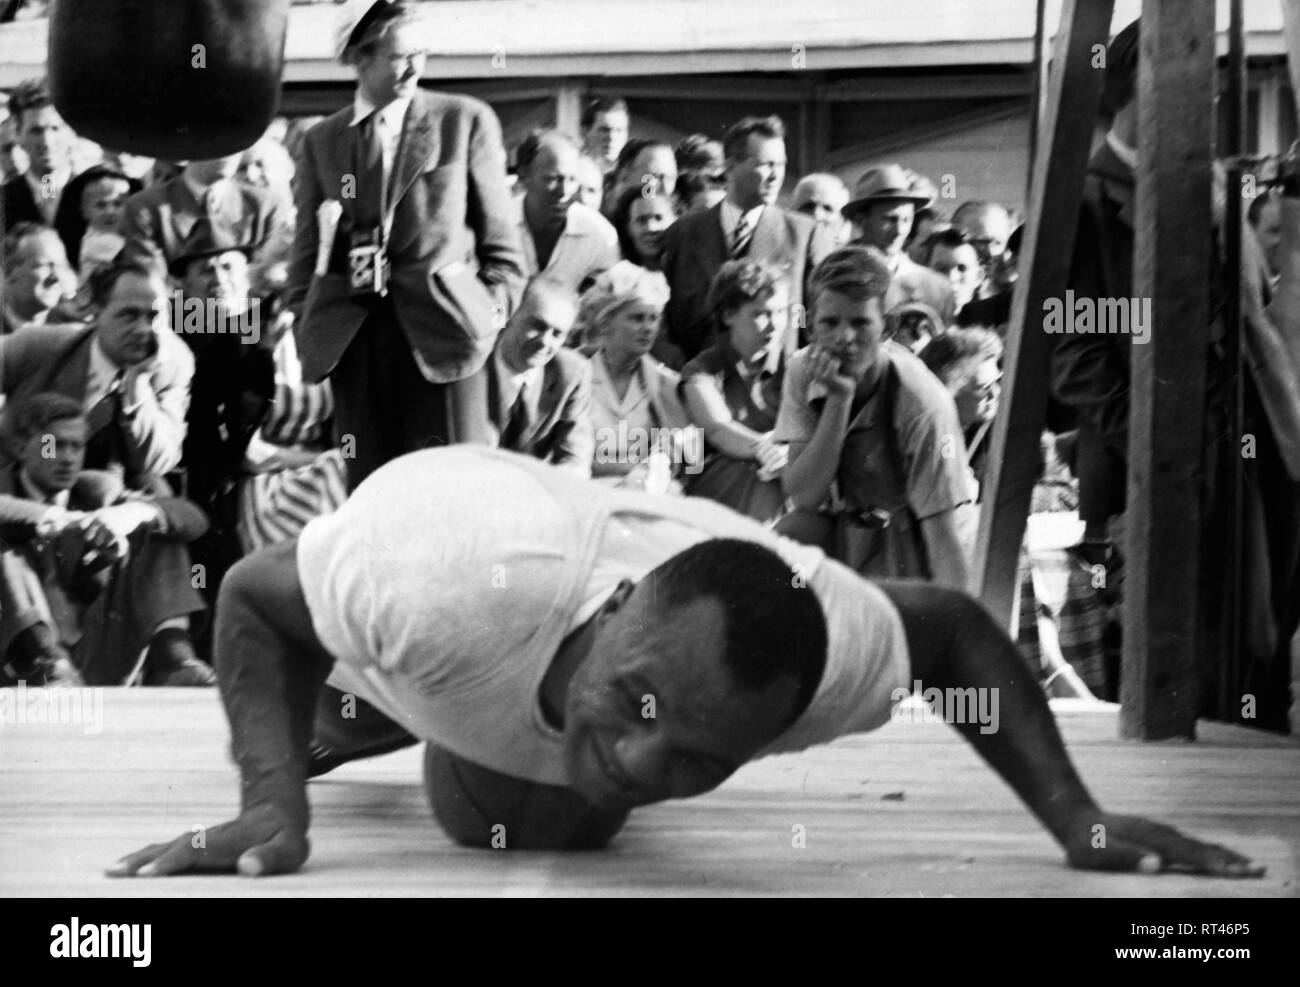 Walcott, Jersey Joe, 31.01.1914 - 25.2.1994, American boxer, at show training, Universal Sports Exhibtion, Stockholm, 1949, Additional-Rights-Clearance-Info-Not-Available - Stock Image